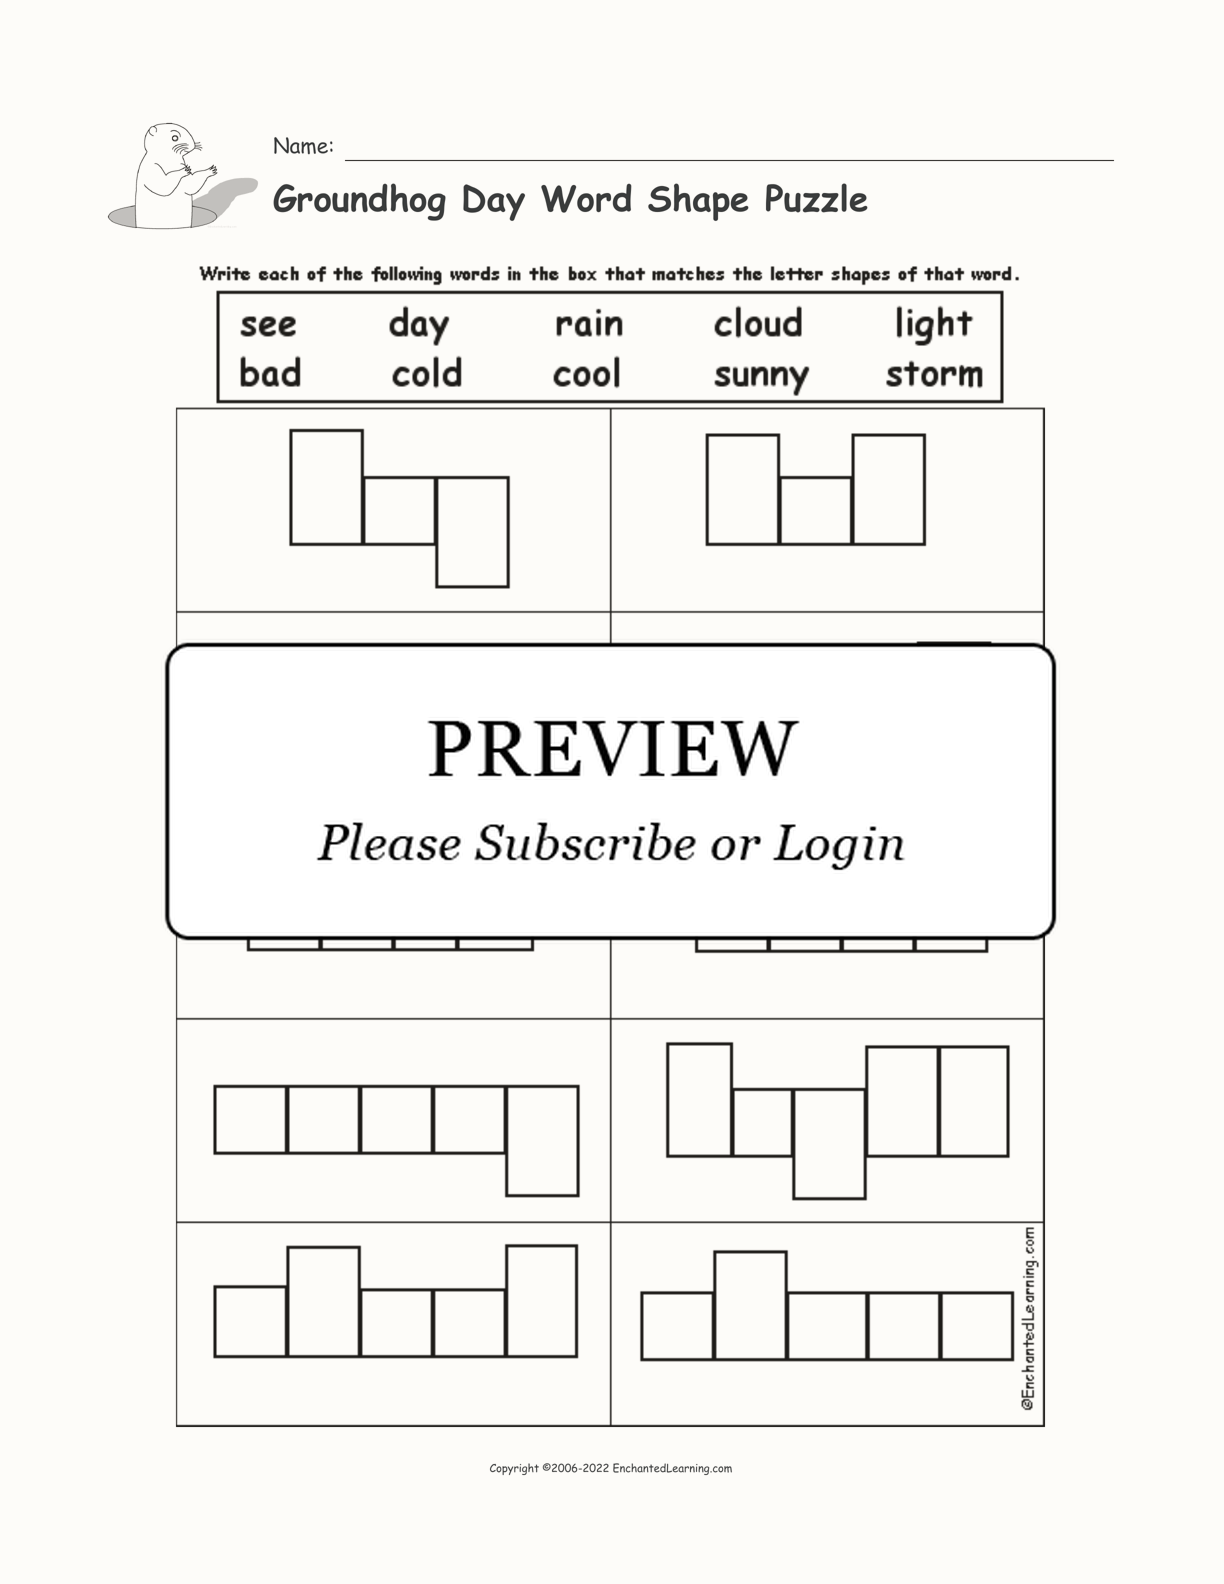 Groundhog Day Word Shape Puzzle interactive worksheet page 1